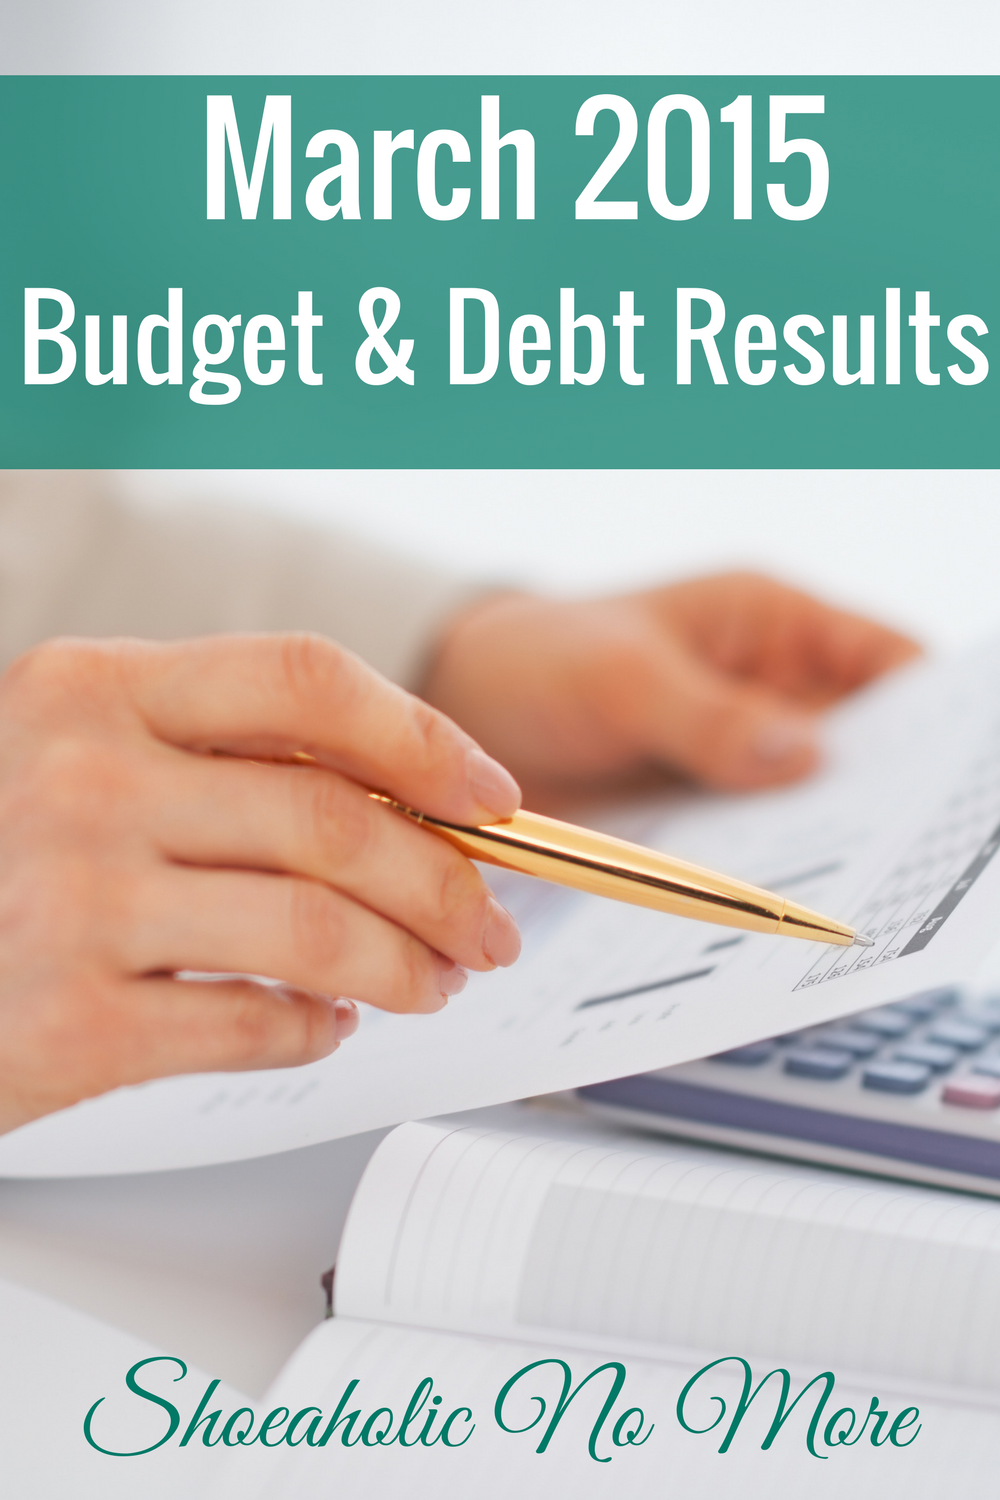 Even when I have a not so great month, I love sharing my budget results with you! It keeps me accountable, and shows you that even as a finance blogger, I still struggle sometimes!